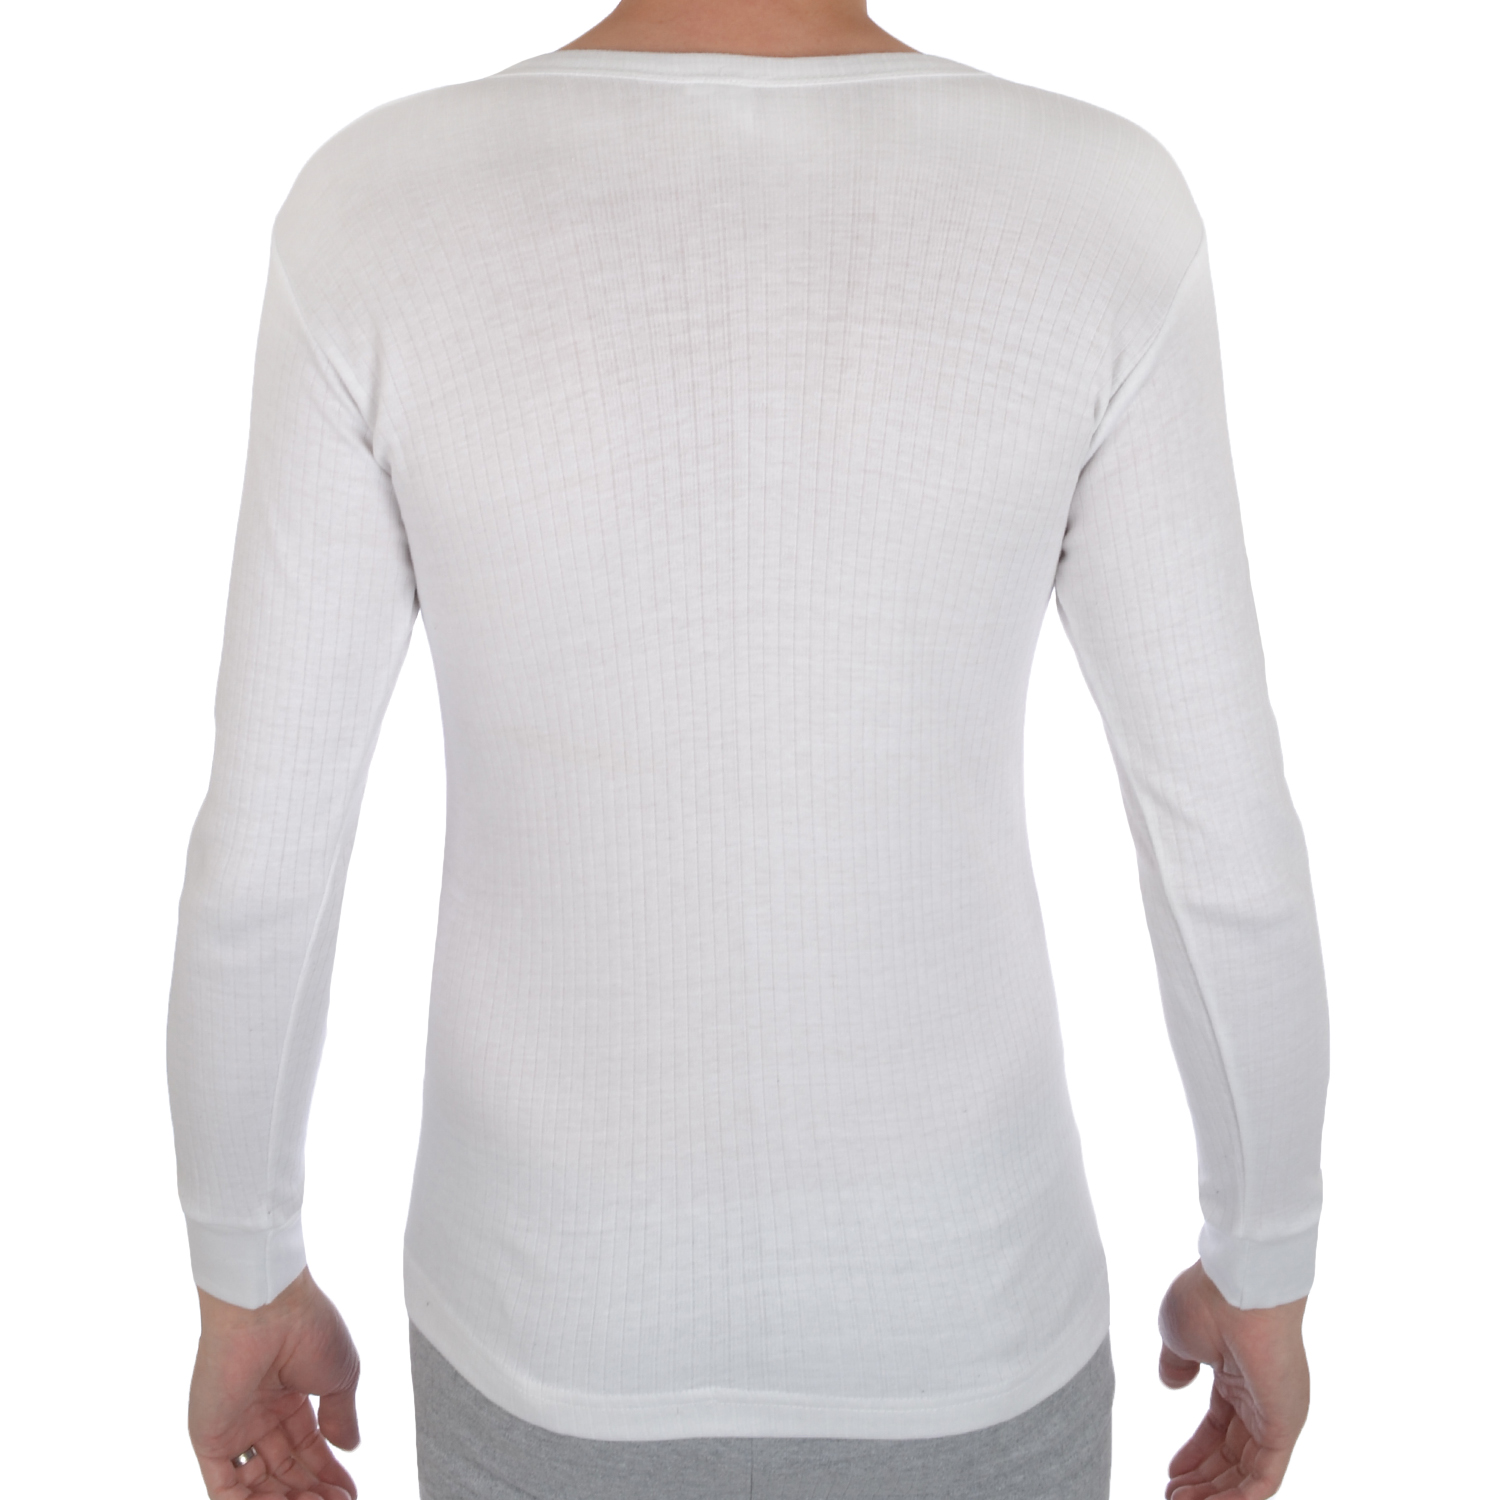 Mens thermal long sleeve warm winter underwear baselayer t for Thermal t shirt long sleeve